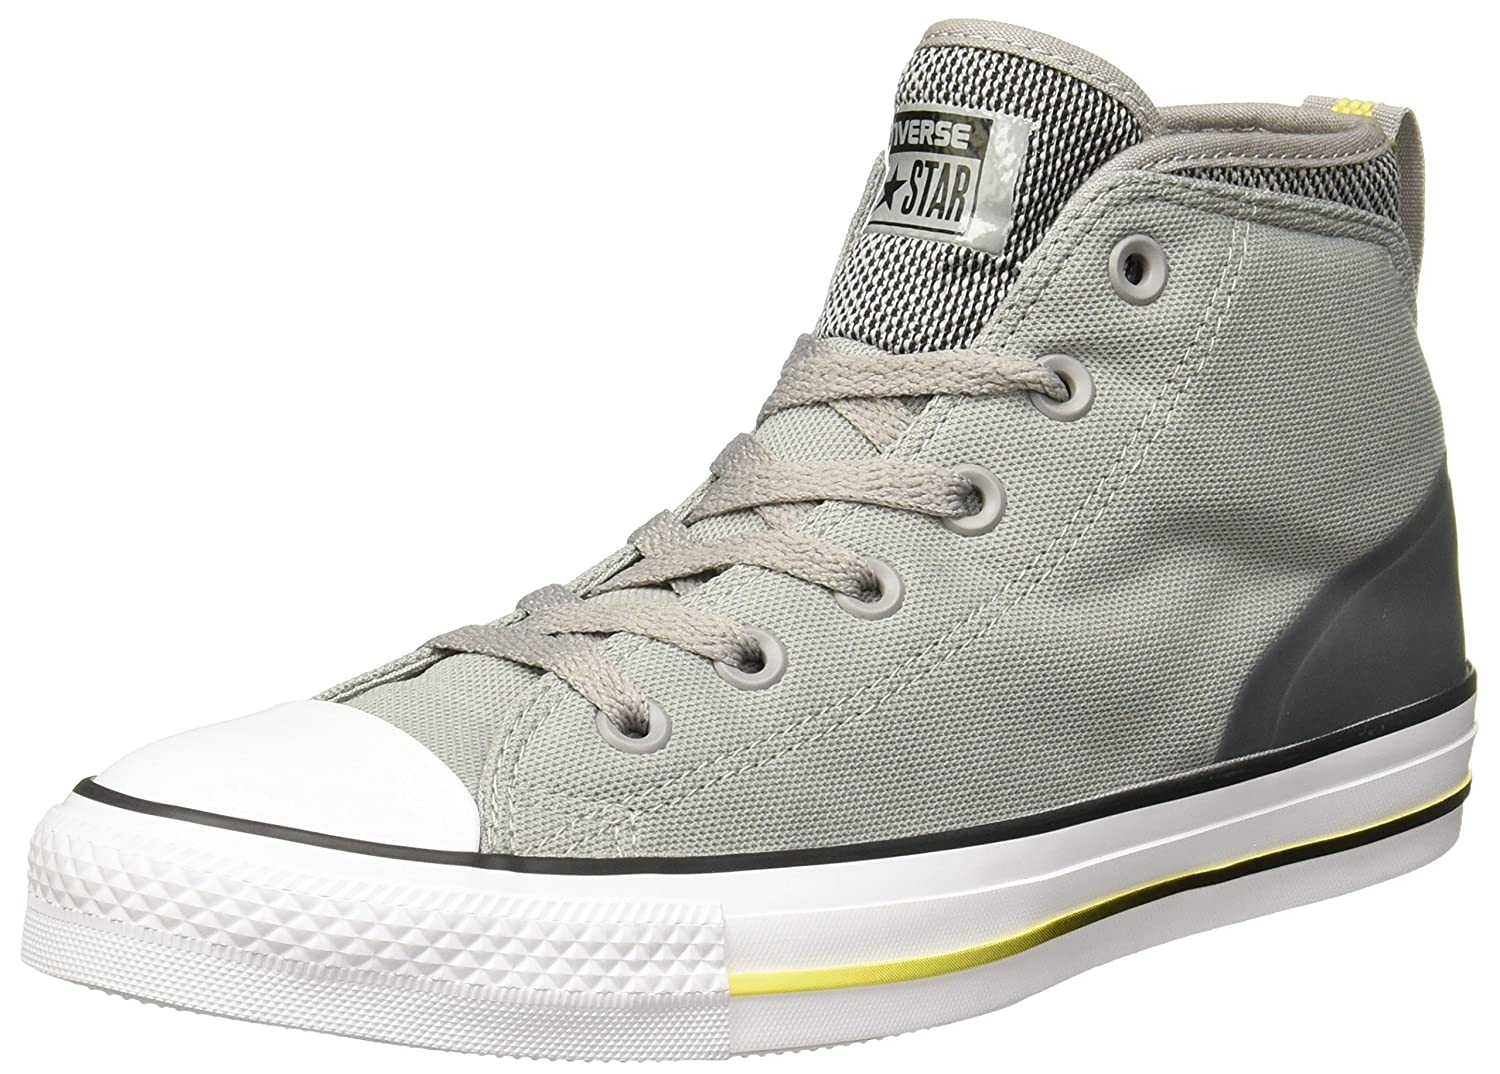 Converse Chuck Taylor All Star Syde Street Mid B01HNB8JXI 10 M US|Dolphin/Black/Fresh Yellow